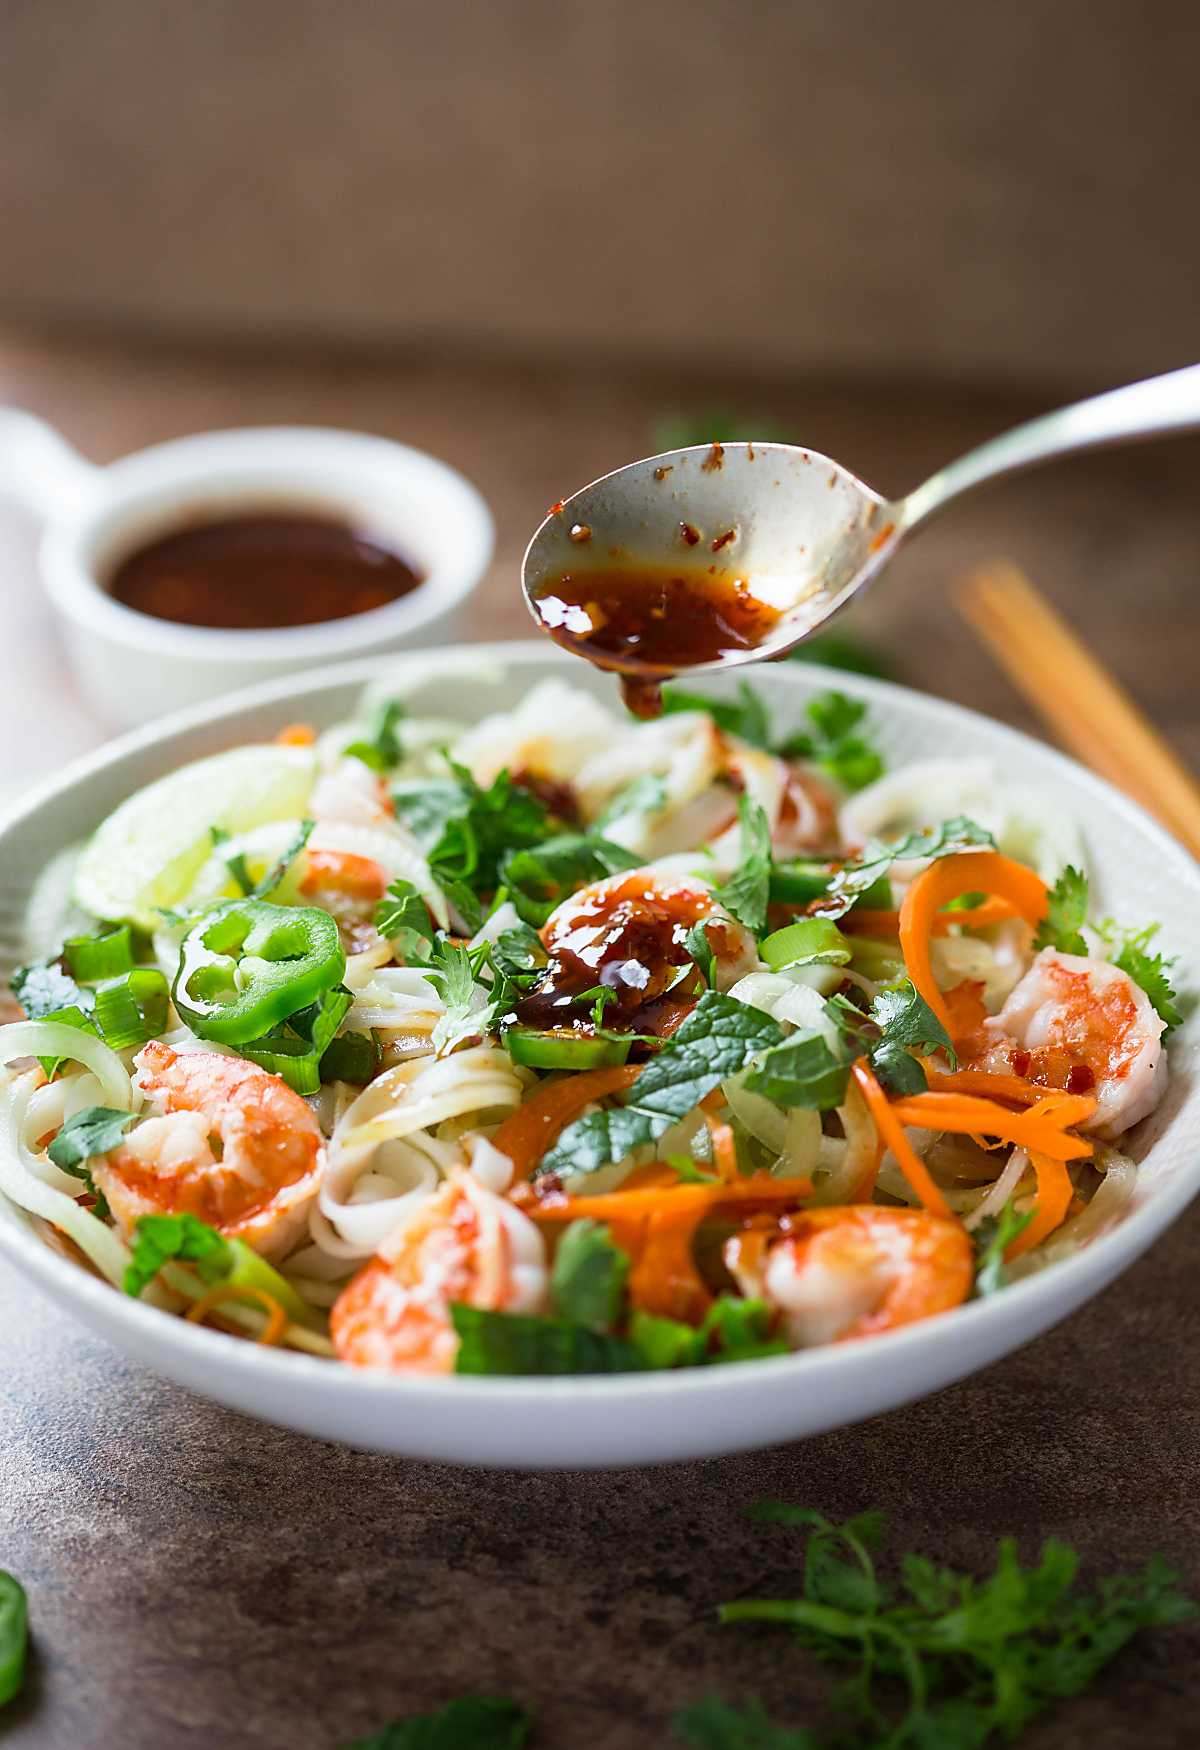 ThisVietnamese Summer Rolls Salad Bowl is a perfect alternative to wrapping Vietnamese summer rolls in rice paper wraps.